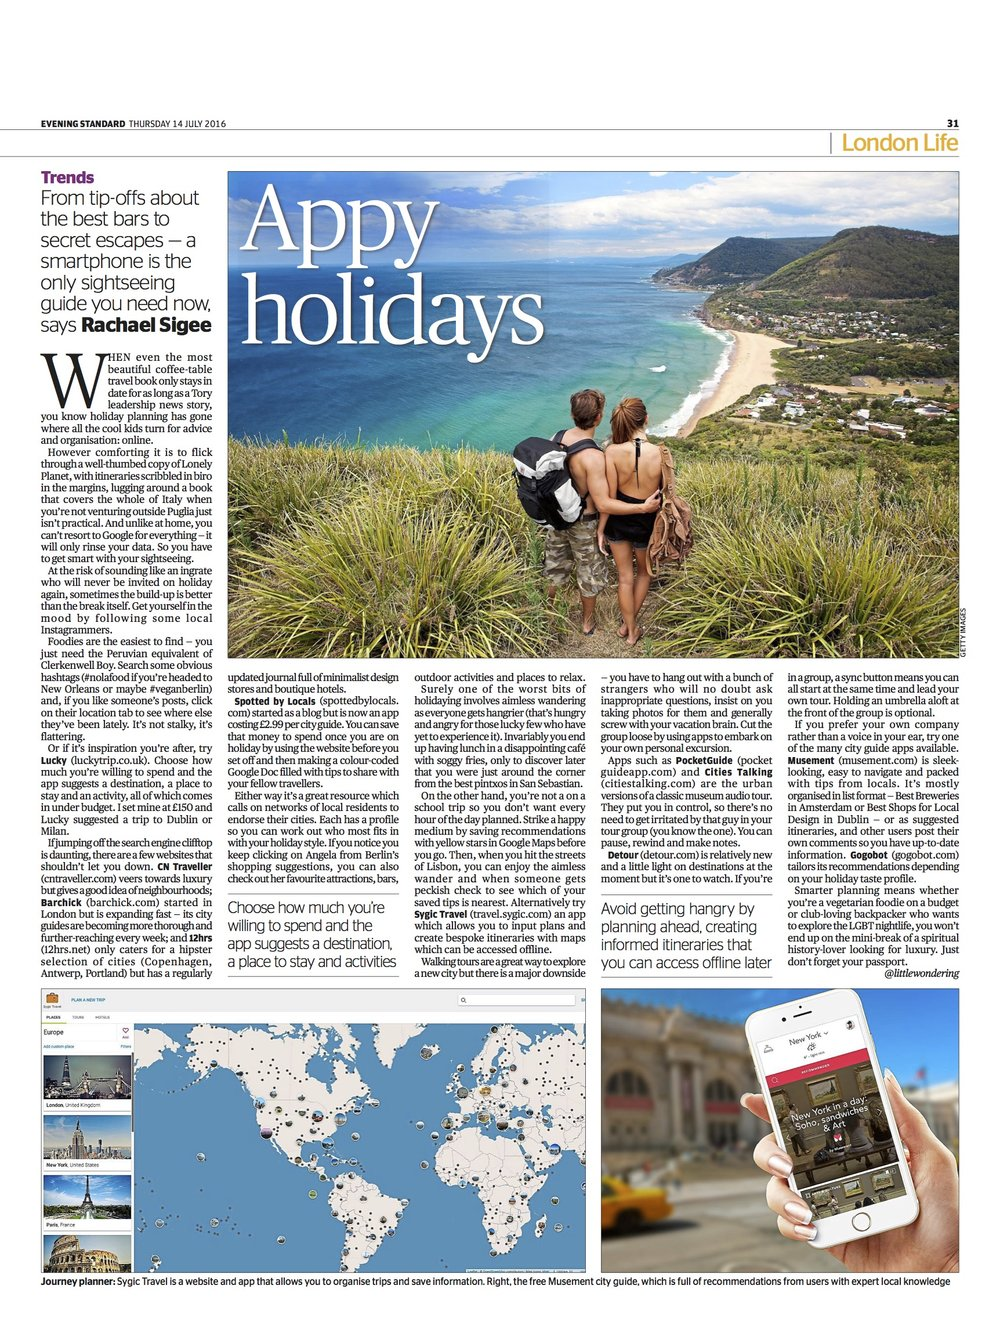 Feature on holiday and travel apps